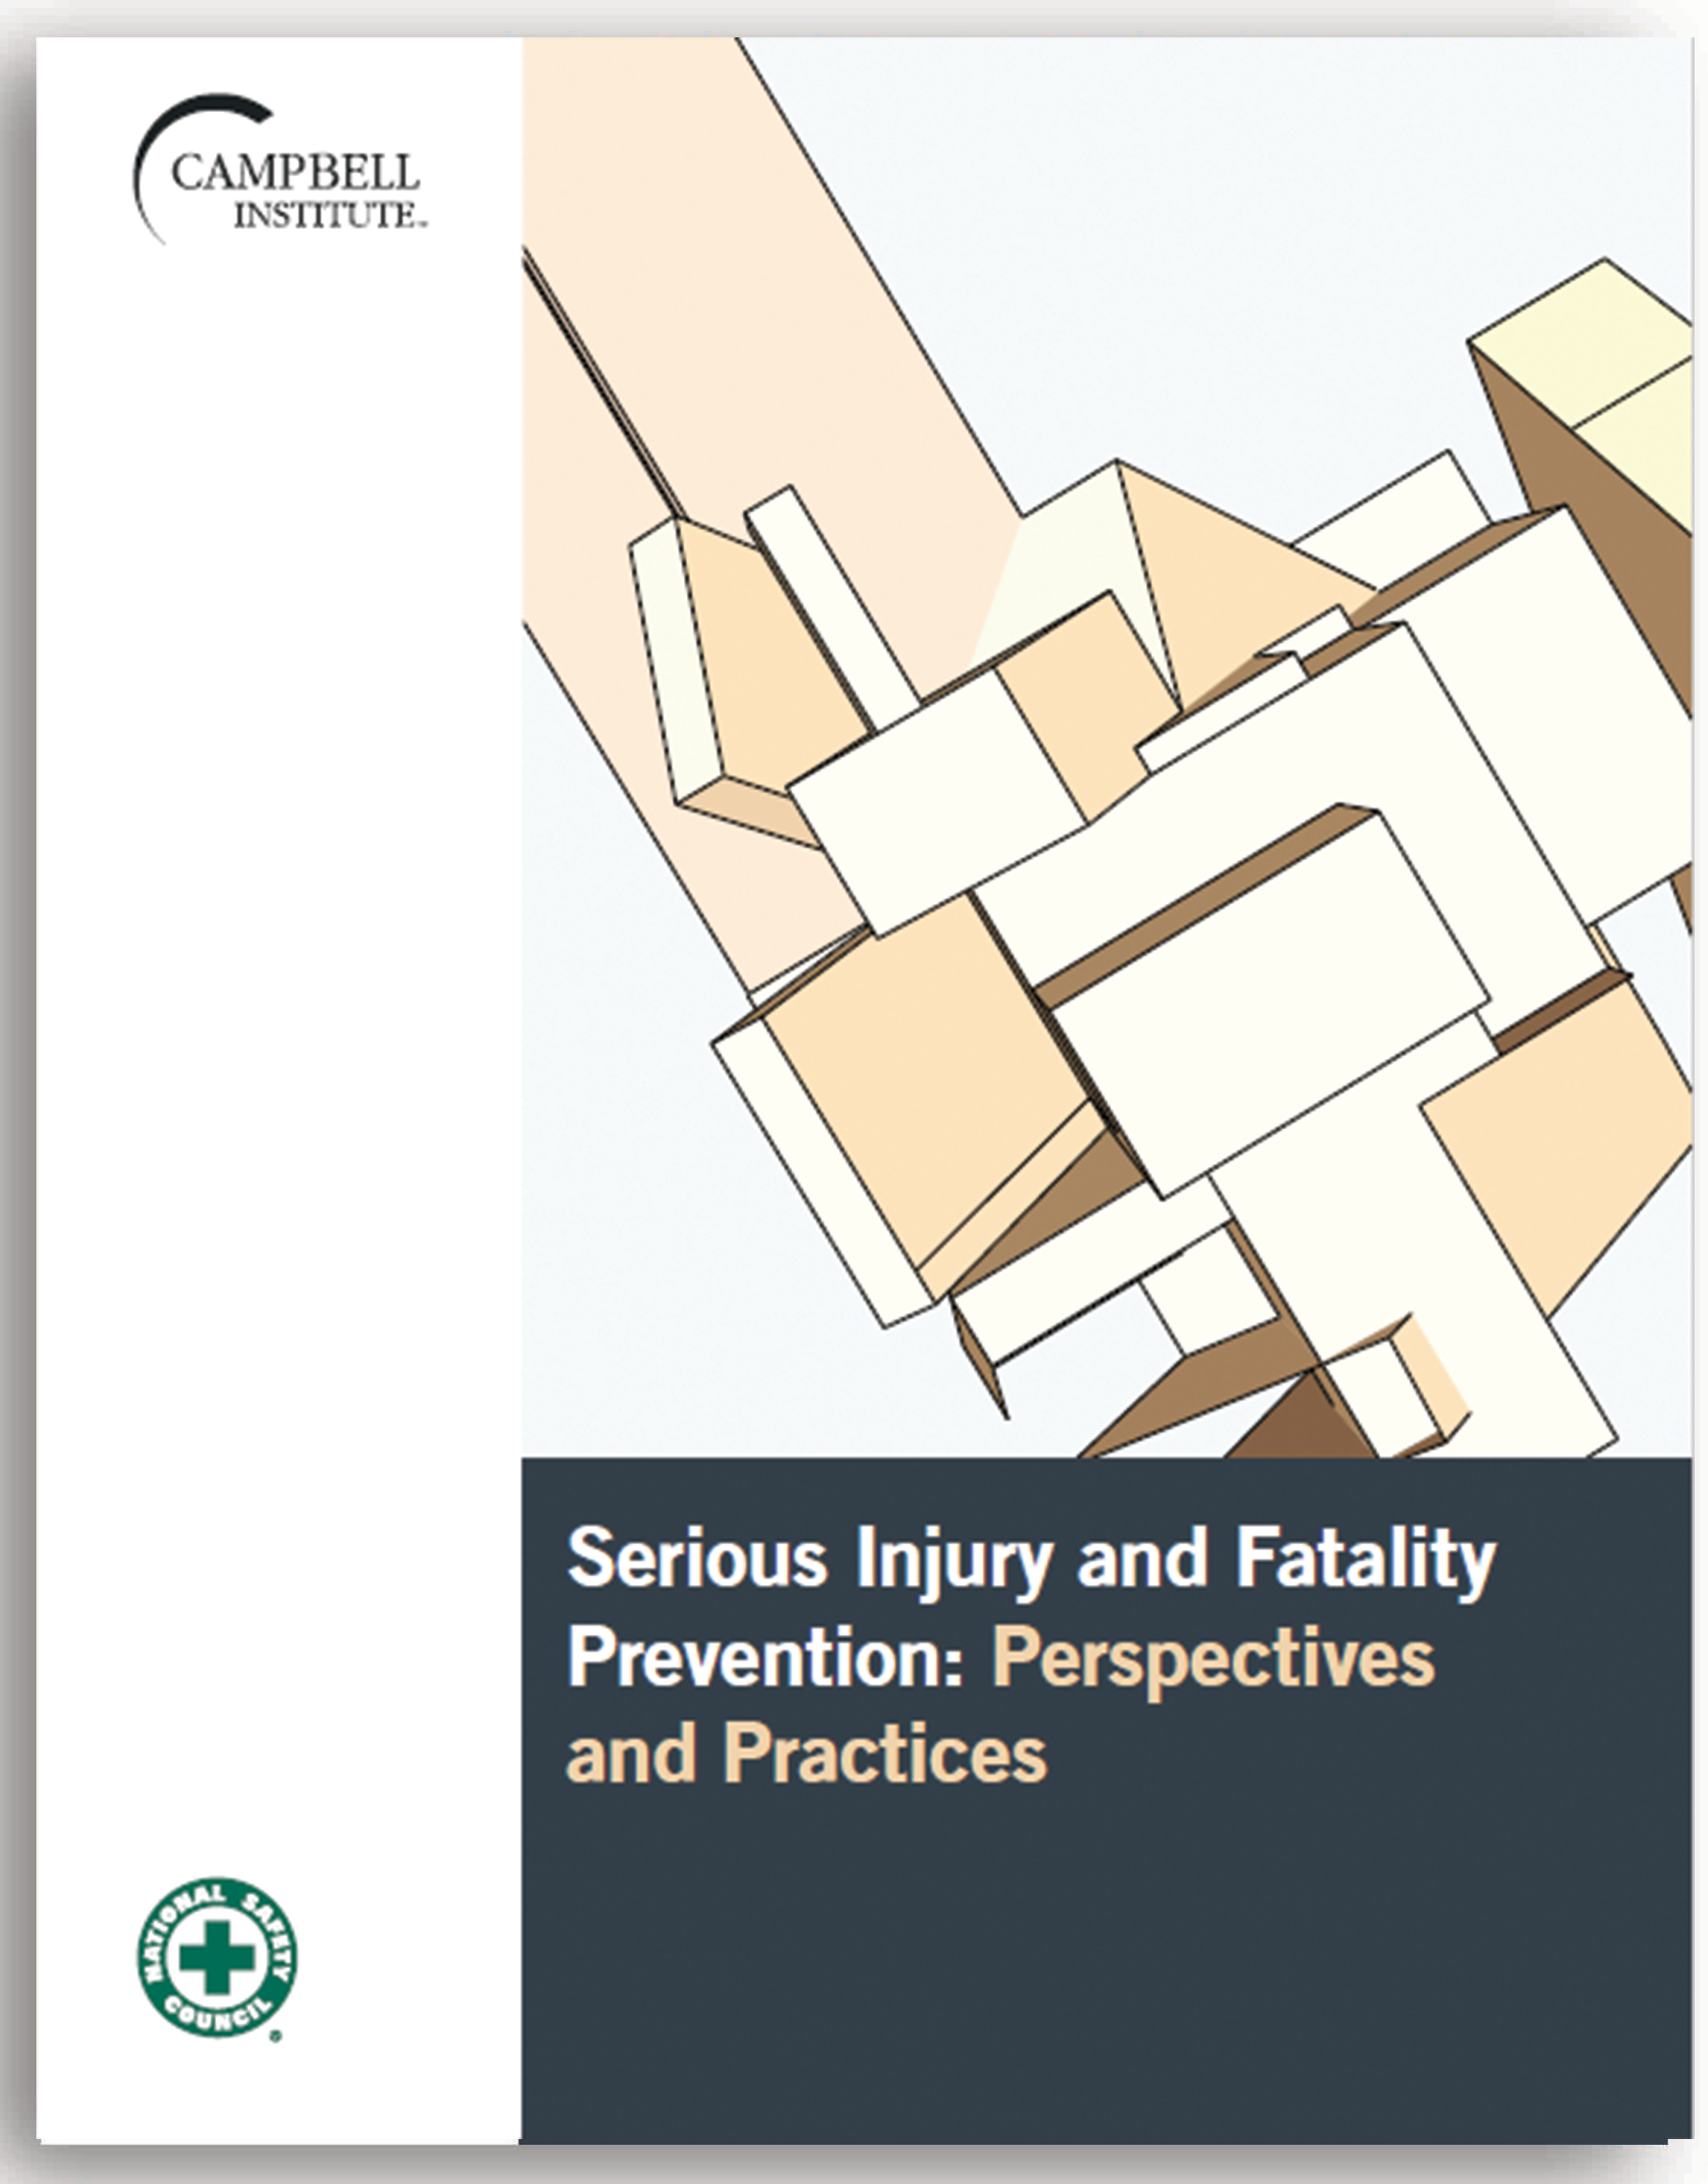 Serious Injury and Fatality Prevention: Perspectives and Practices